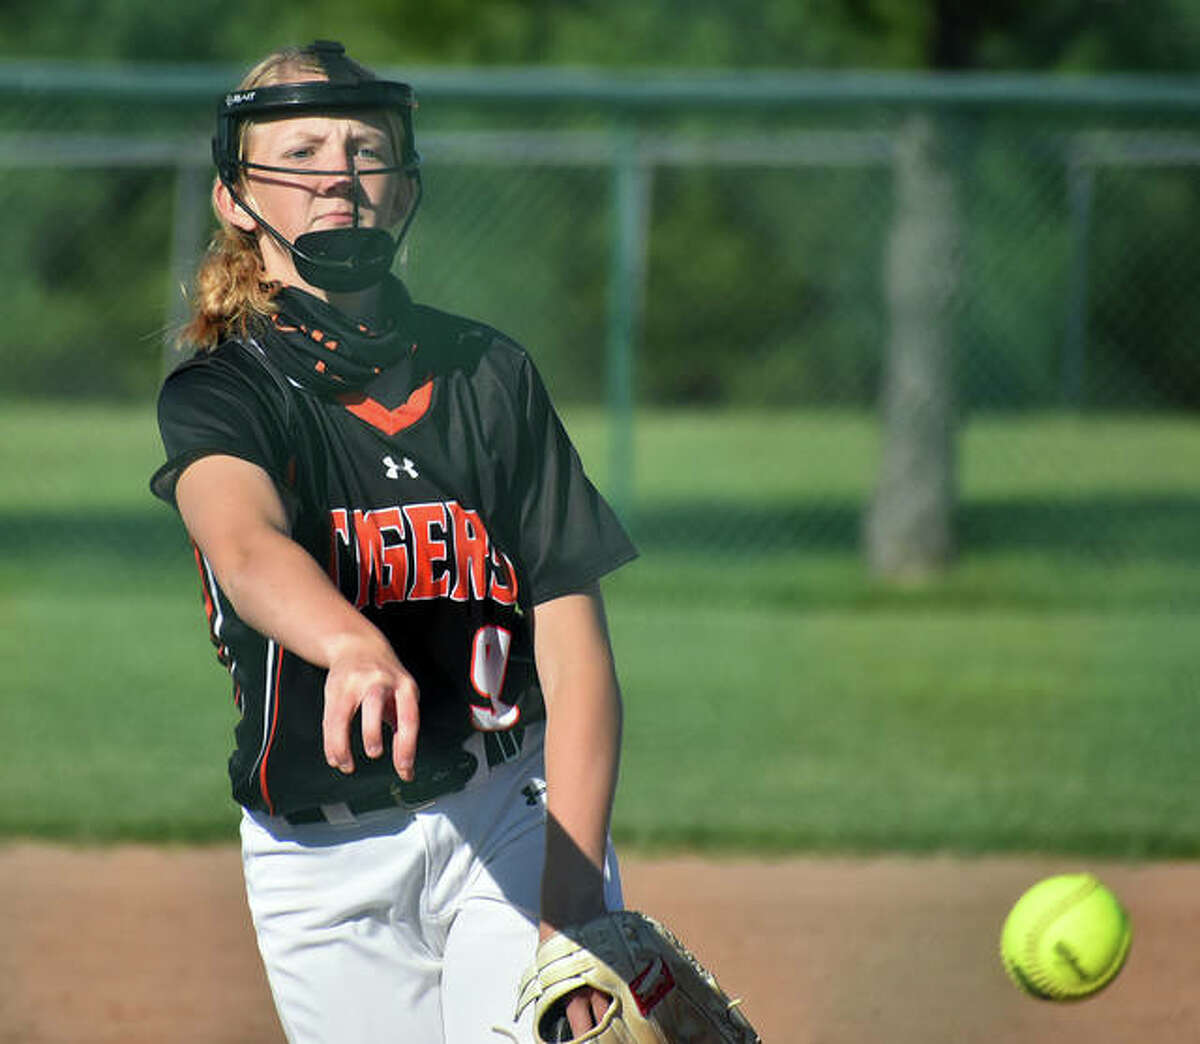 Edwardsville senior Avery Hamilton delivers a pitch to a hitter earlier this season.